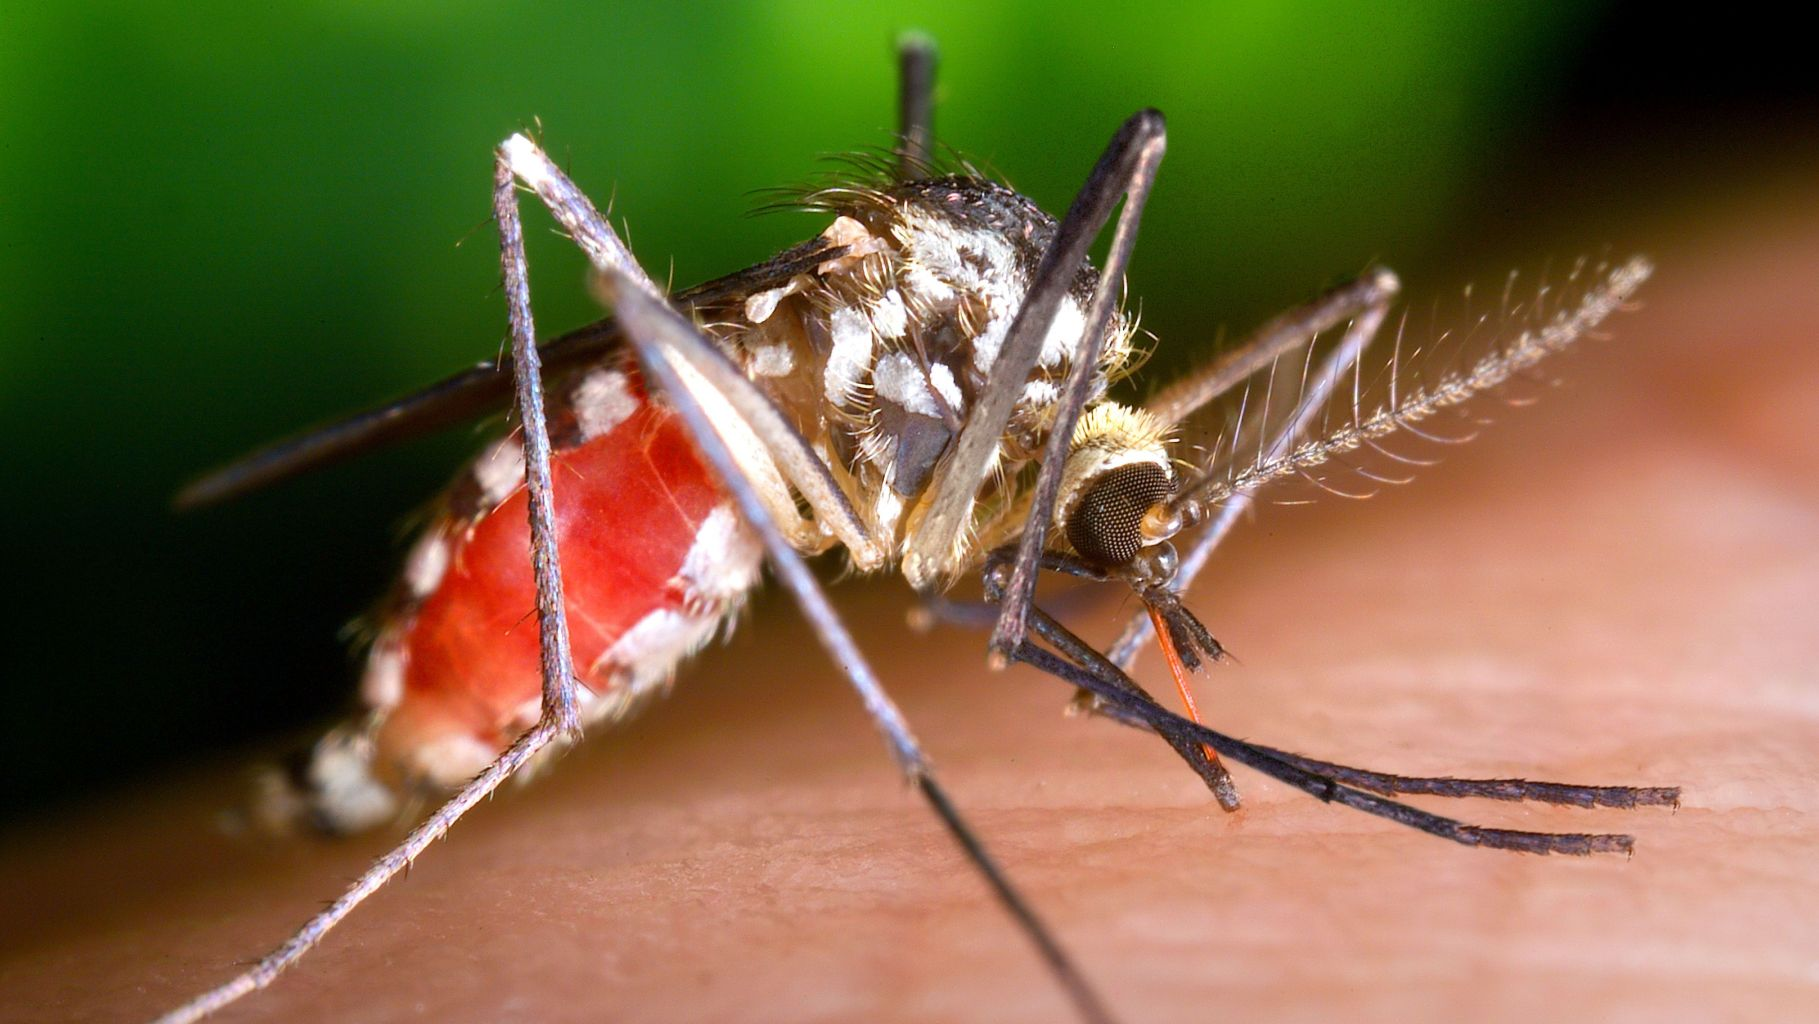 Image: The world's deadliest organism; A mosquito engorged with blood from feeding